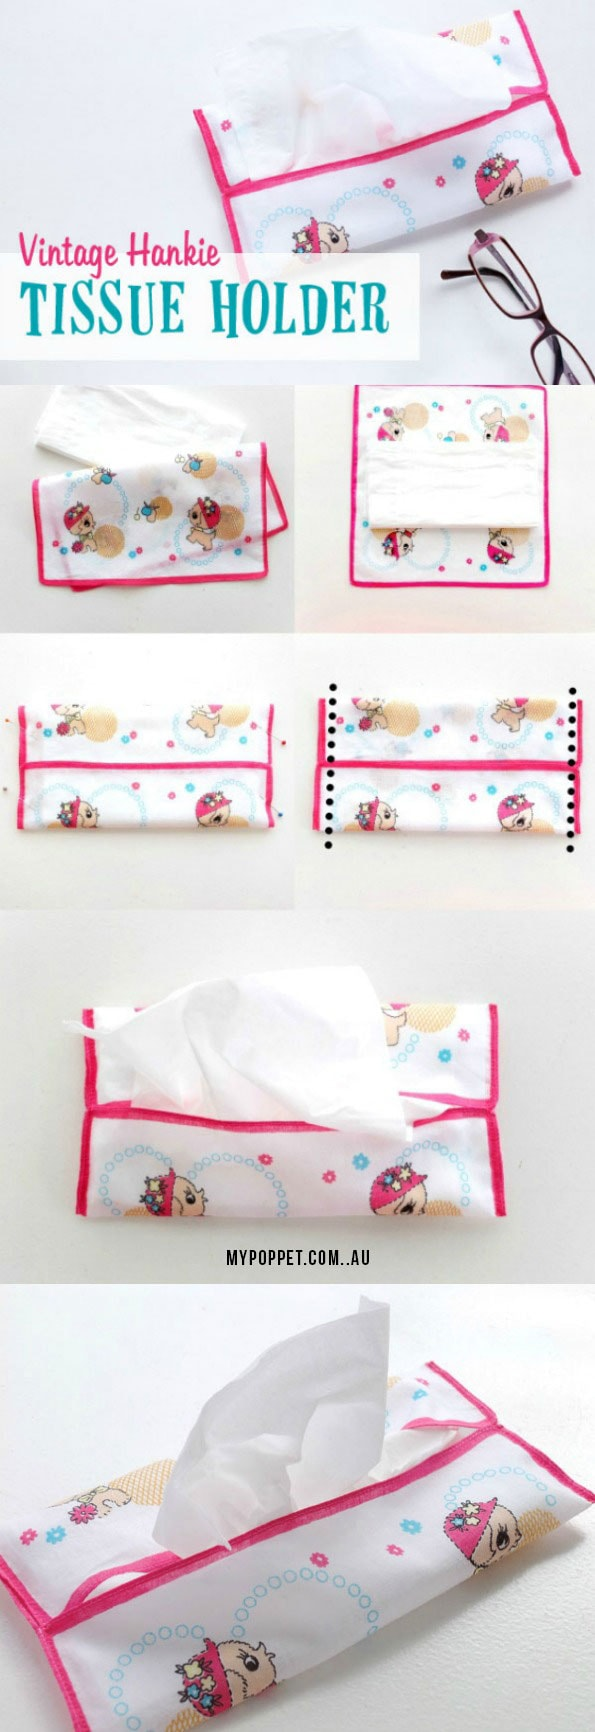 How to make a tissue holder - perfect for travel packing - mypoppet.com.au